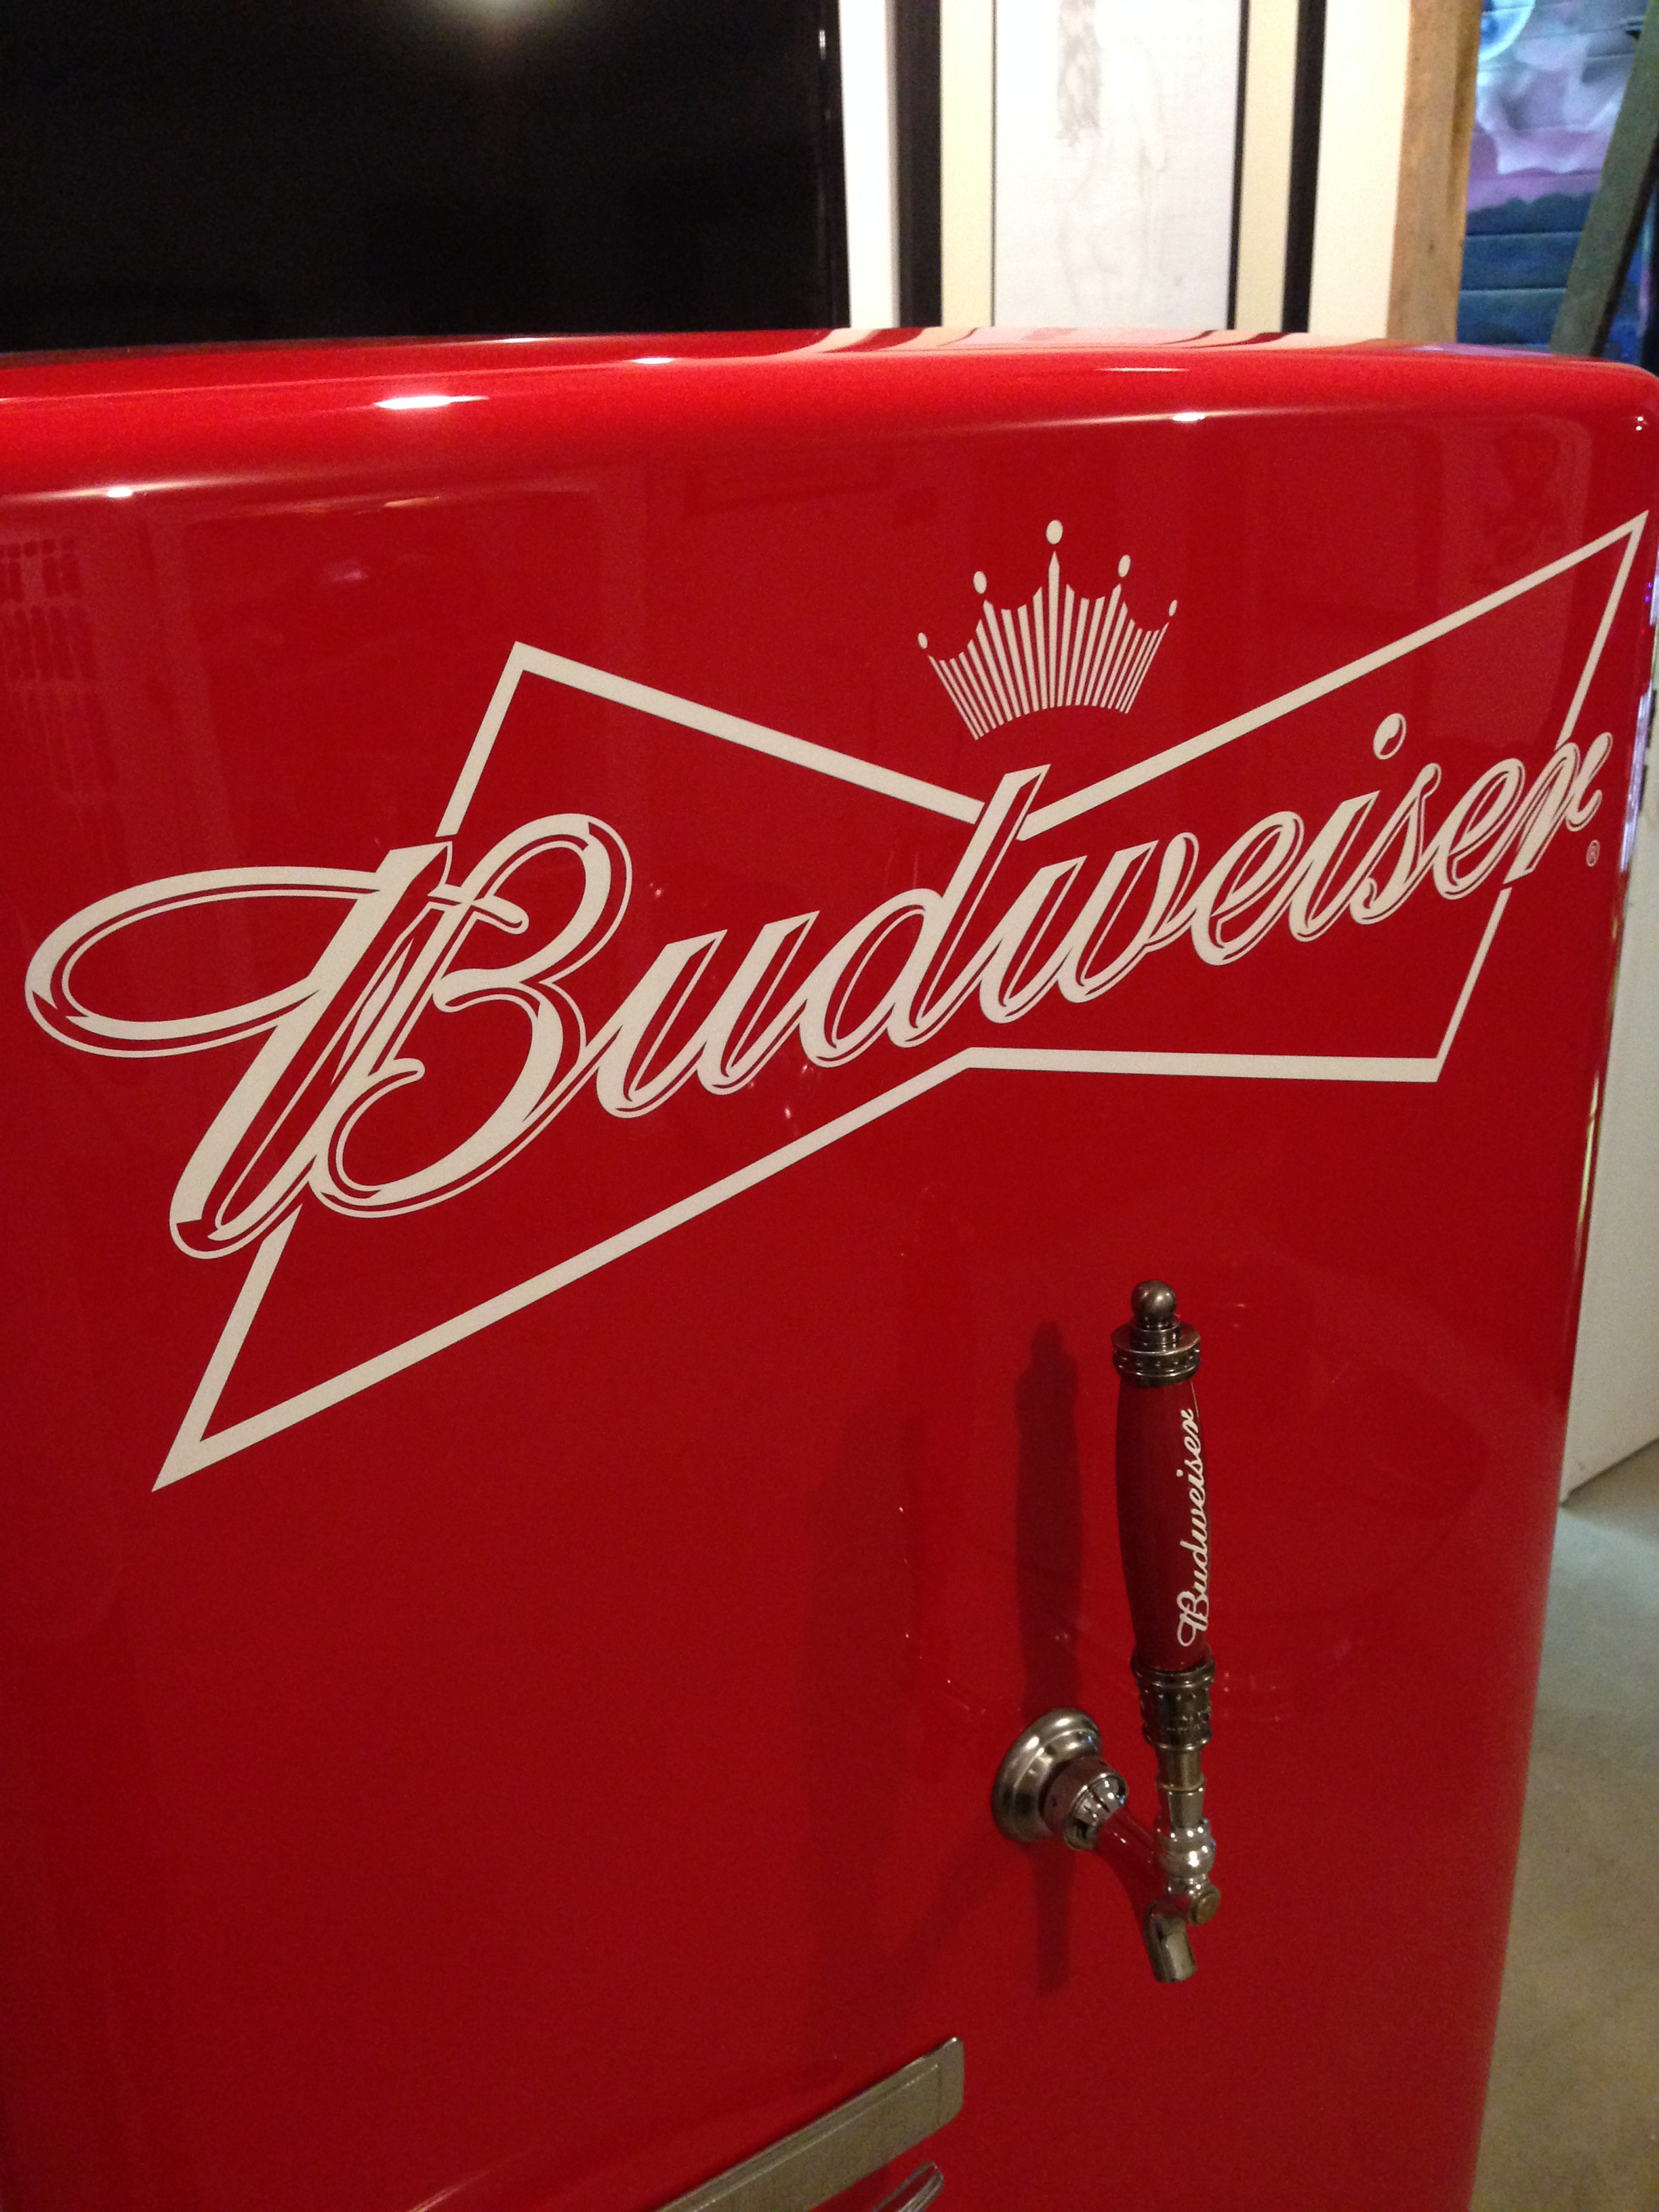 Budweiser custom beer fridge painted by Sketchs Ink customs Ottawa Ontario